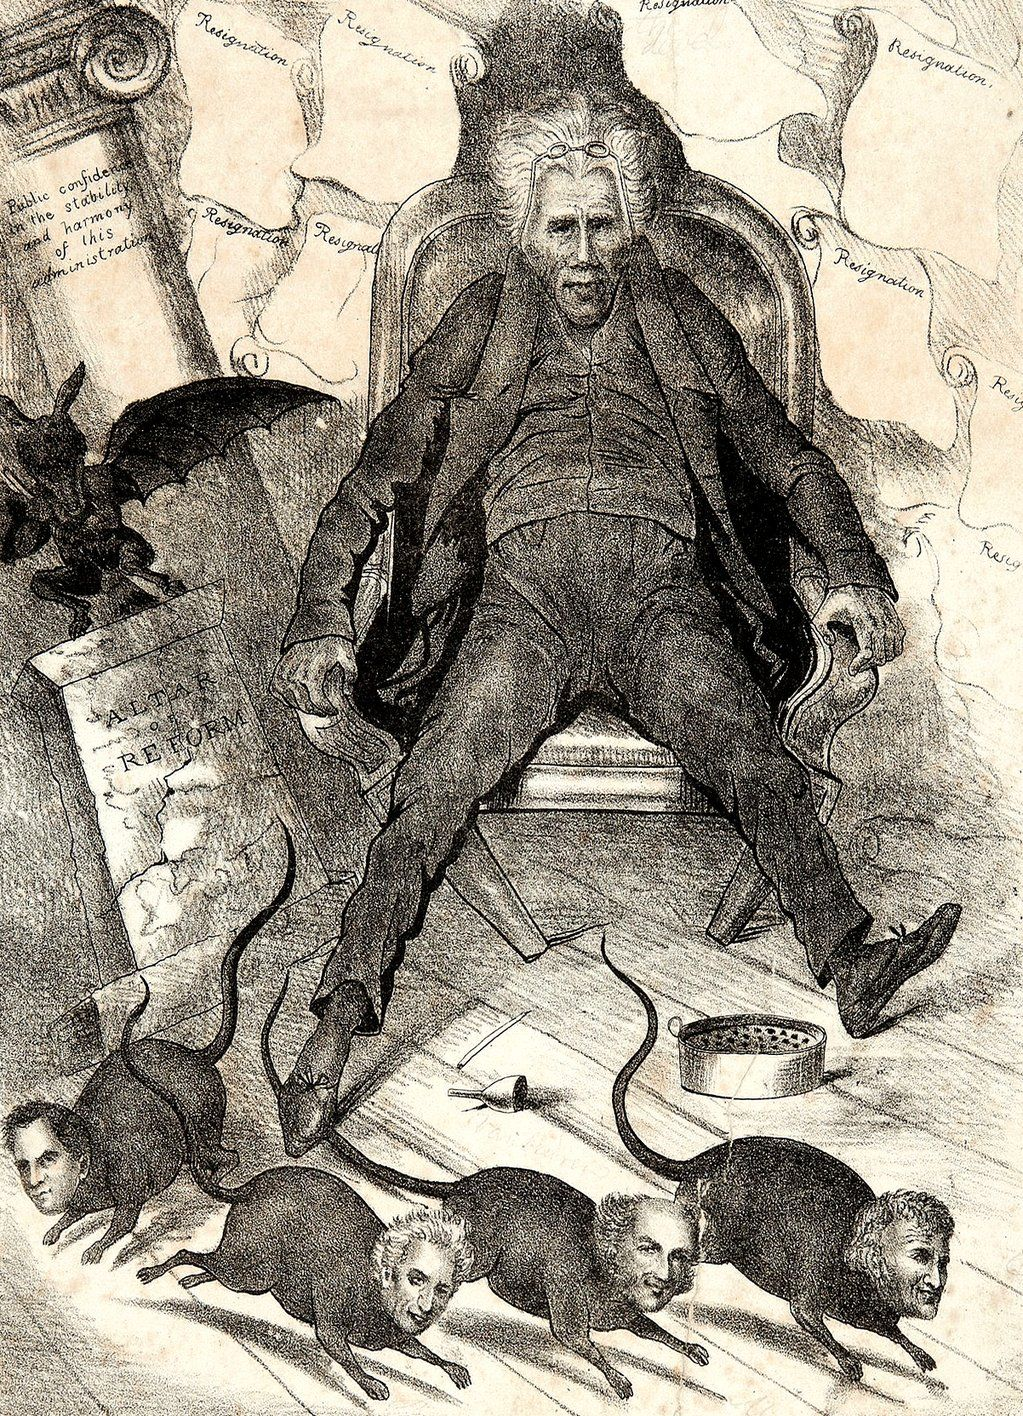 Spoils System Andrew Jackson Lost Drawings On  Andrew Jackson And Drawings